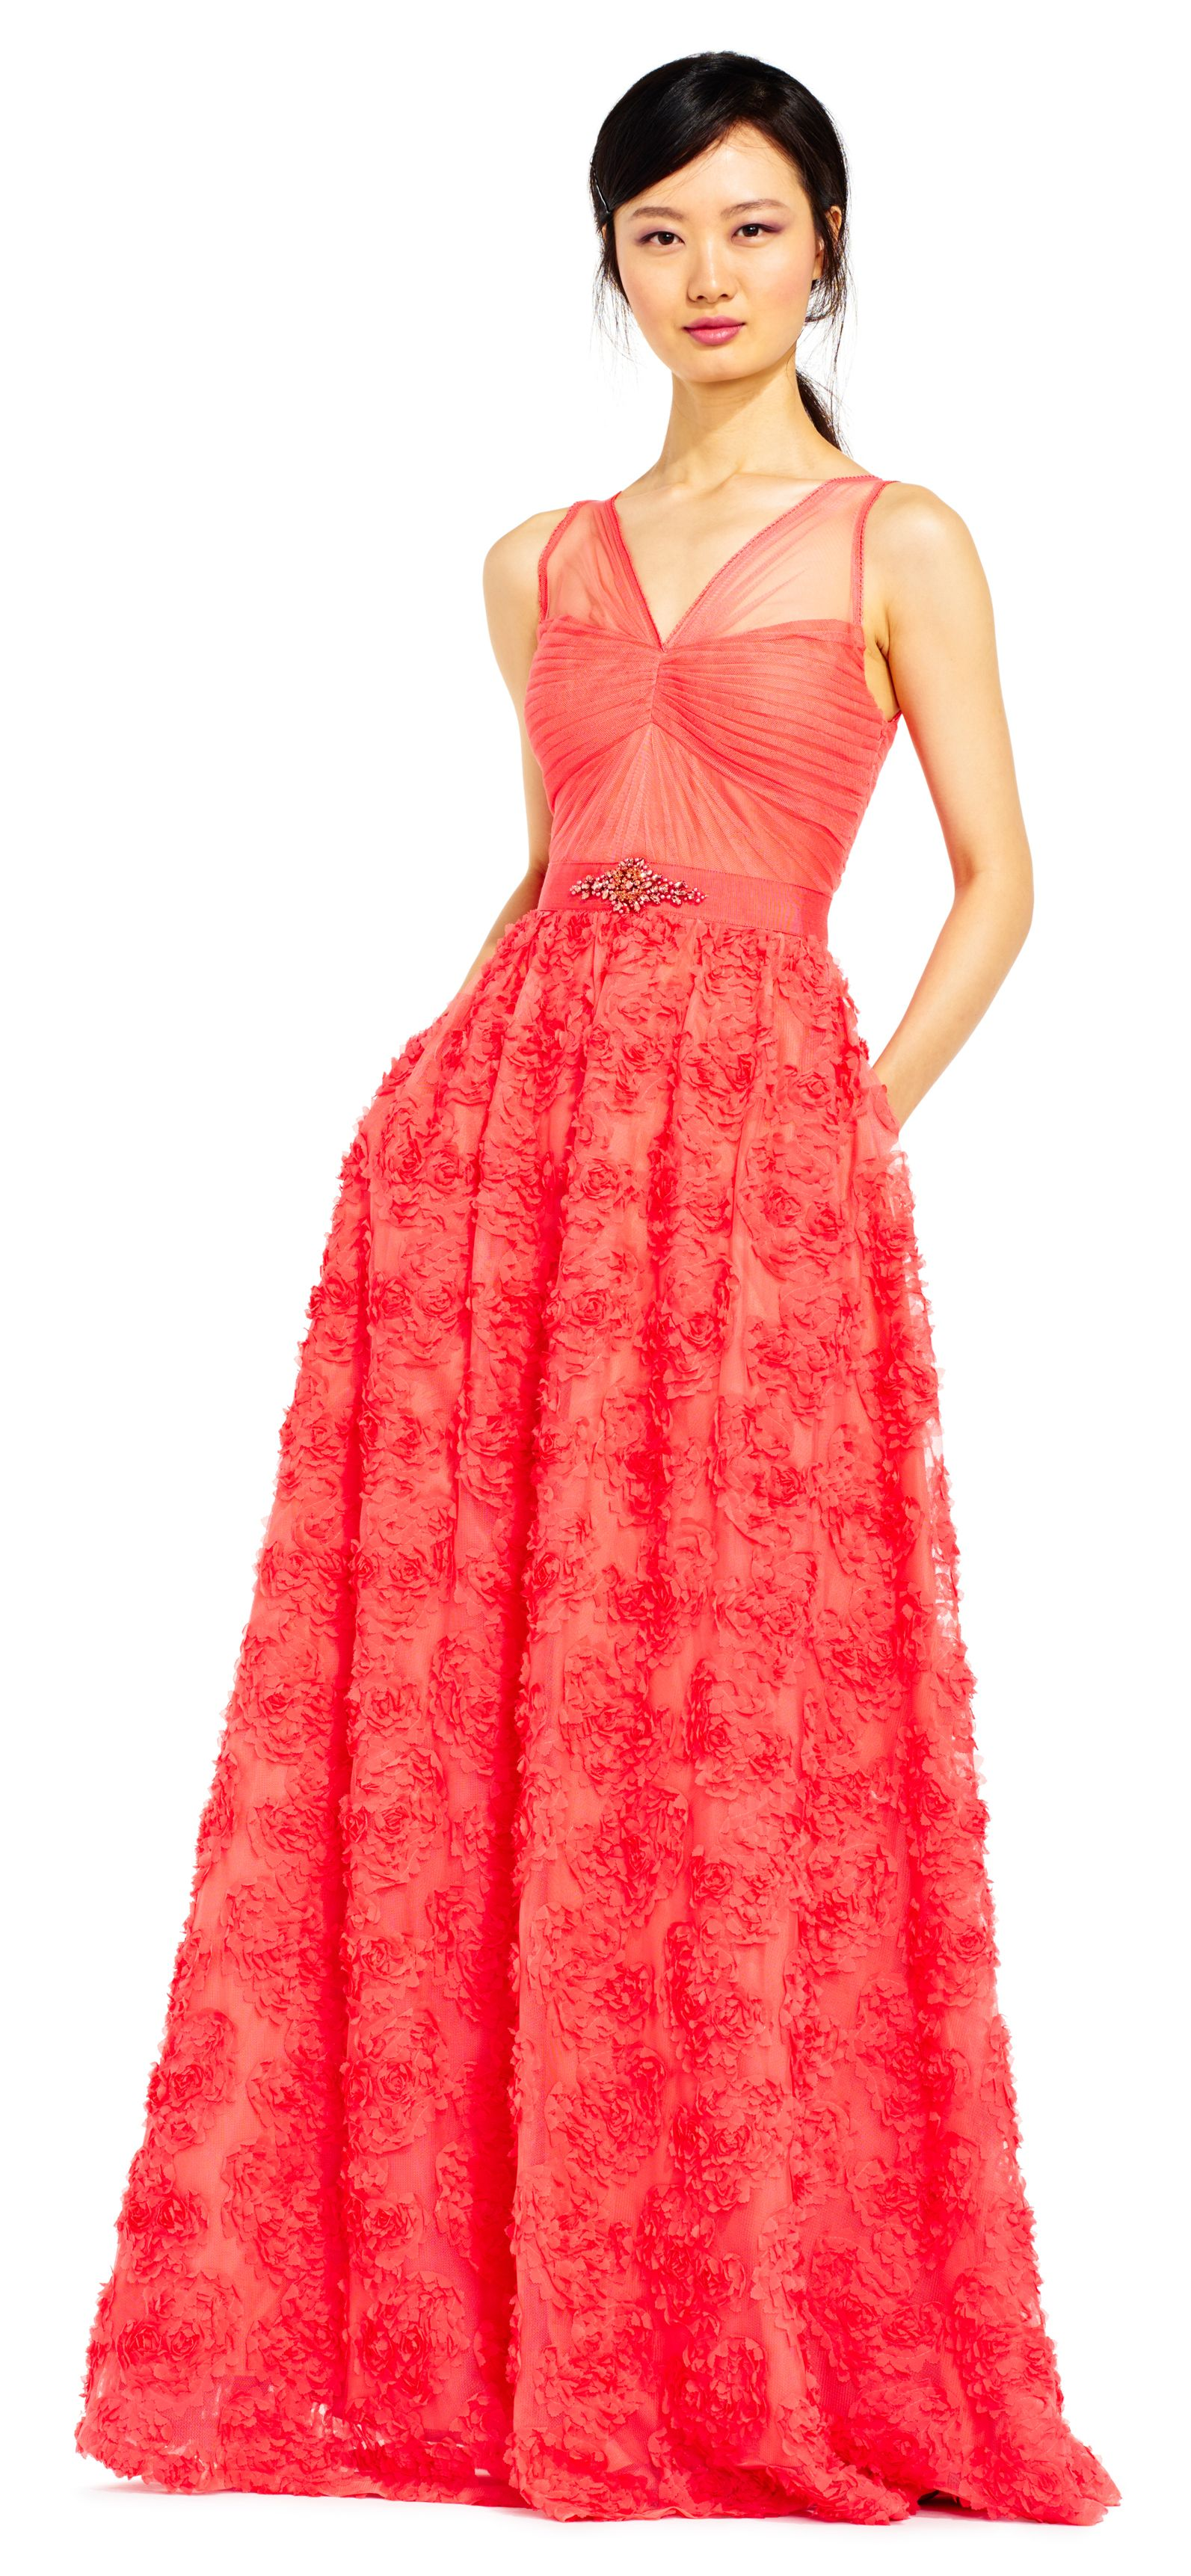 9f9695f66a77 Embellished Petal Chiffon Ball Gown | Adrianna Papell | Bridesmaids ...